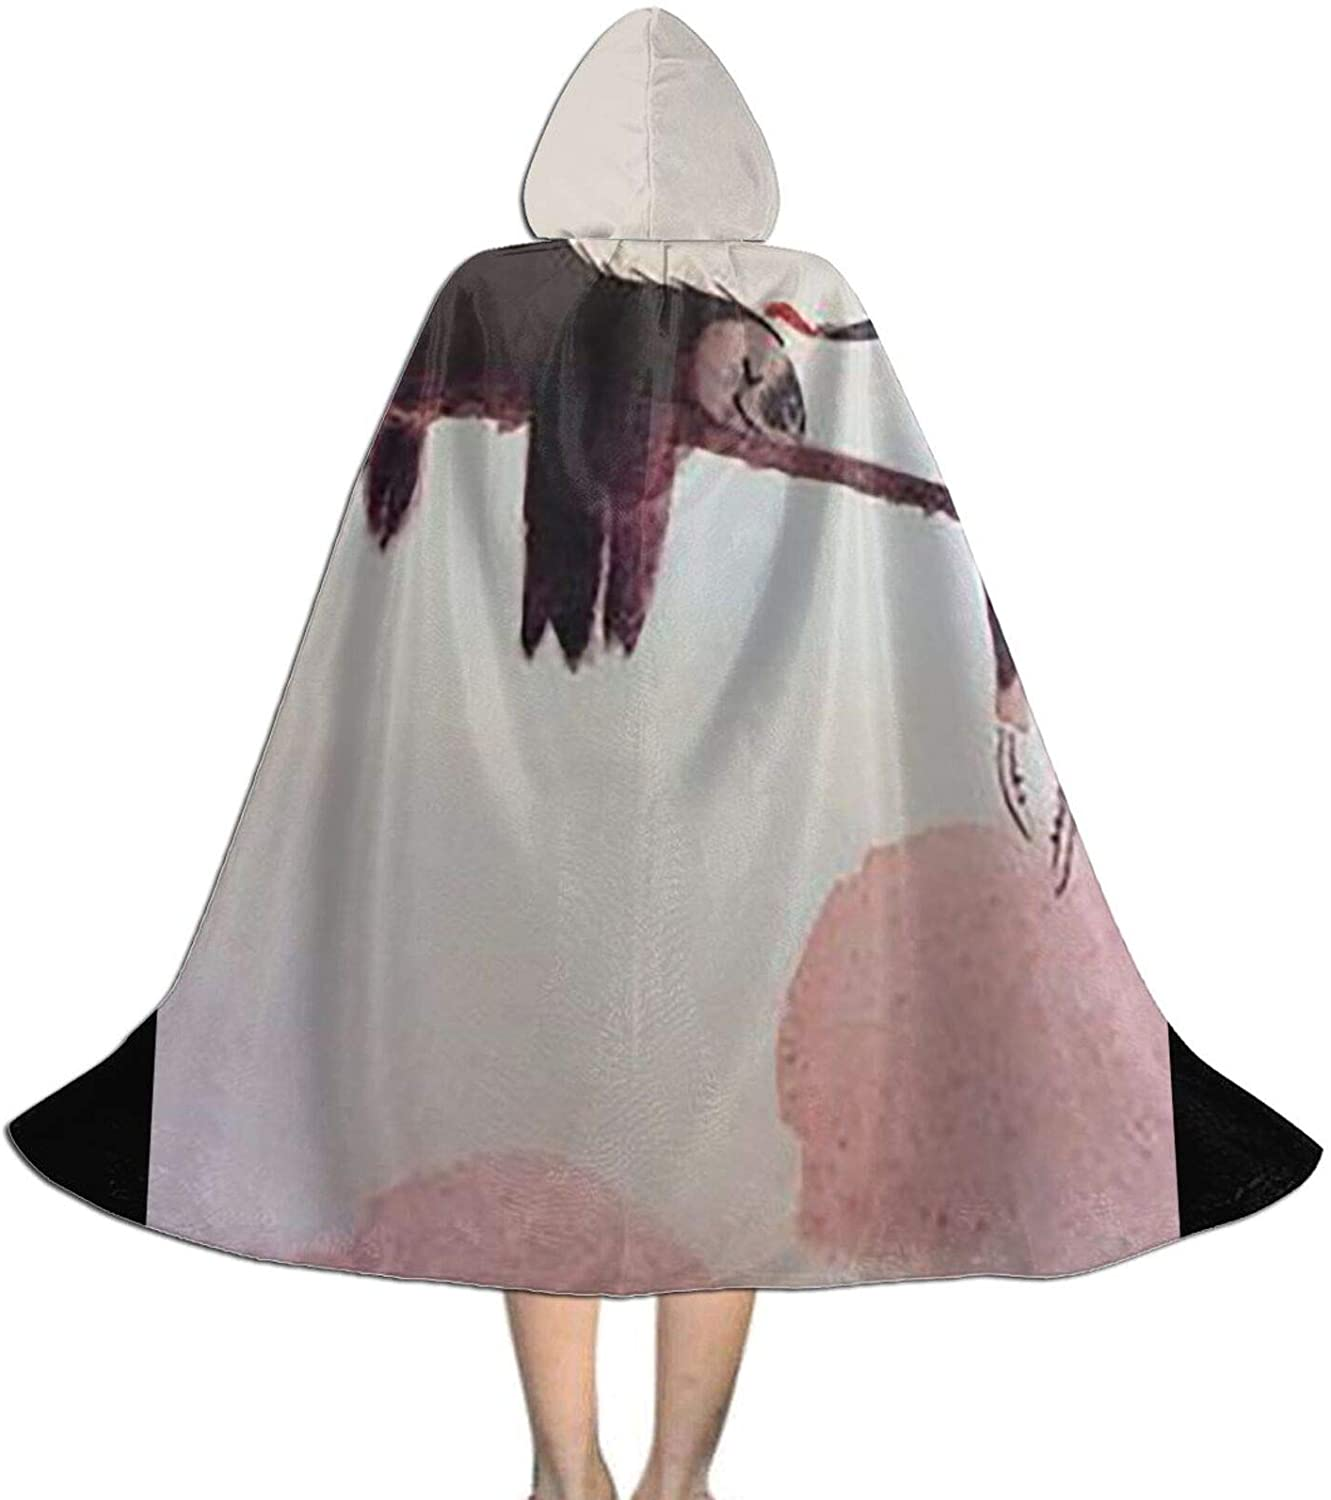 LNUO-1 Unisex Sloth Kid's Long Hooded Cloak Cape for Halloween Party Role Cosplay Costumes